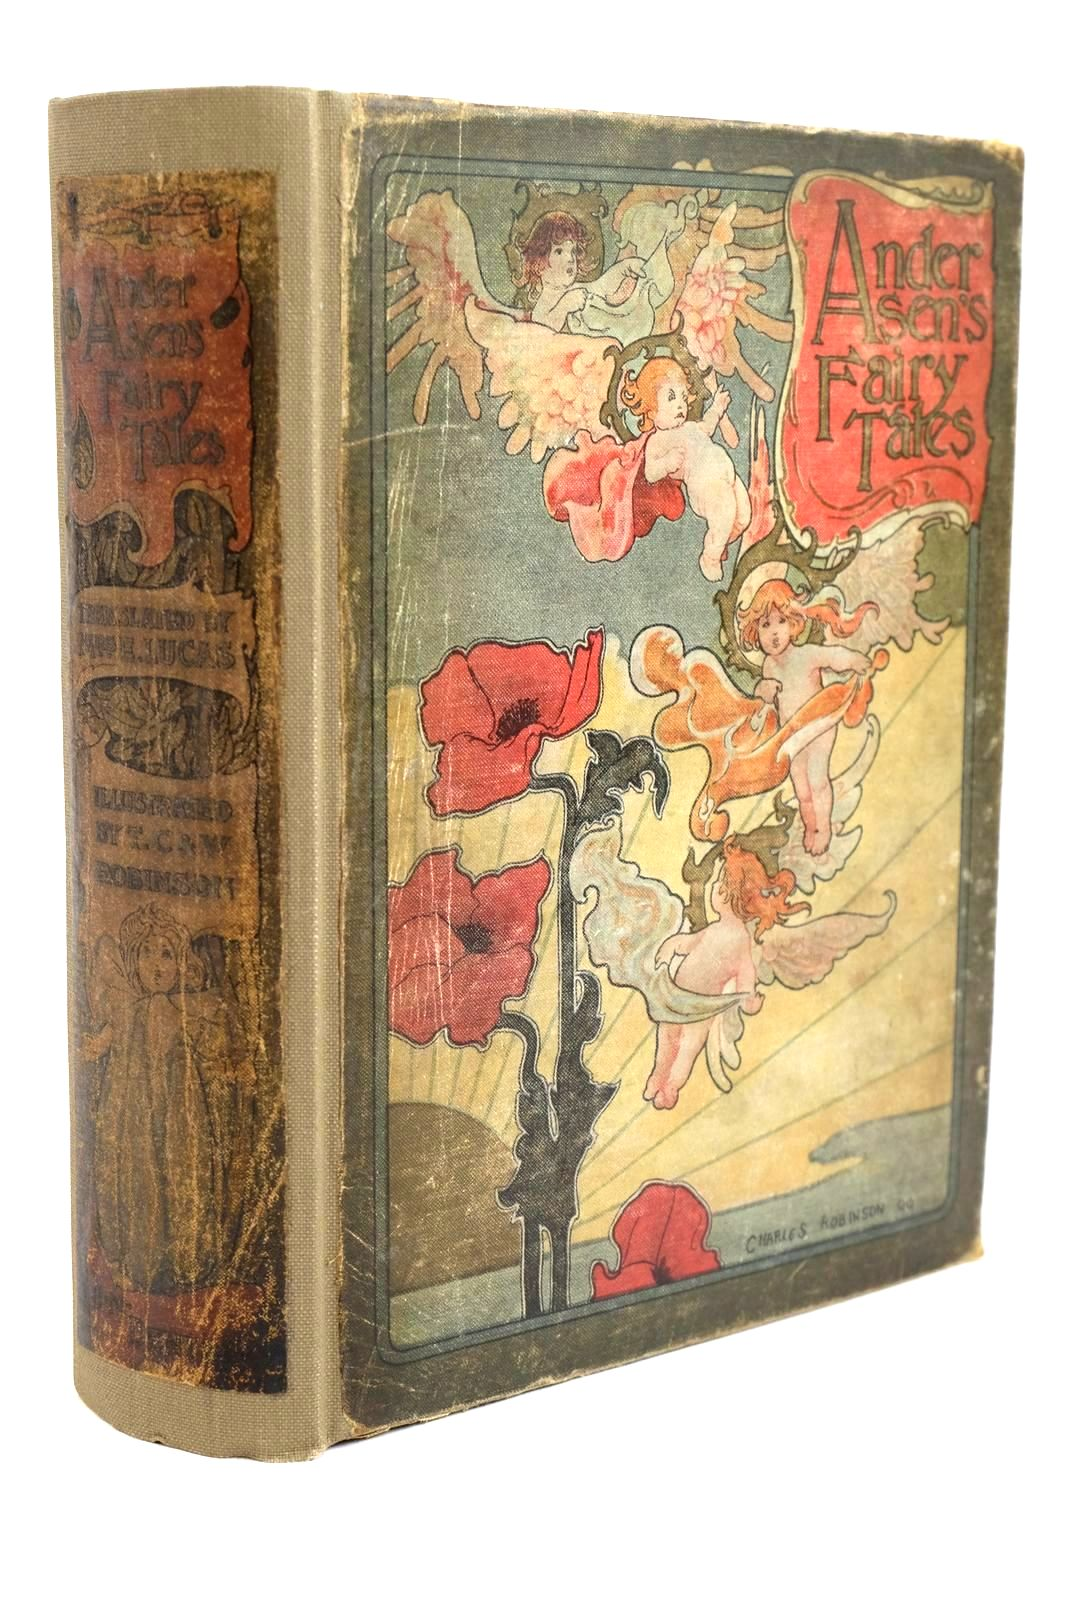 Photo of ANDERSEN'S FAIRY TALES written by Andersen, Hans Christian illustrated by Robinson, T.H. Robinson, Charles Robinson, W. Heath published by J.M. Dent (STOCK CODE: 1320487)  for sale by Stella & Rose's Books